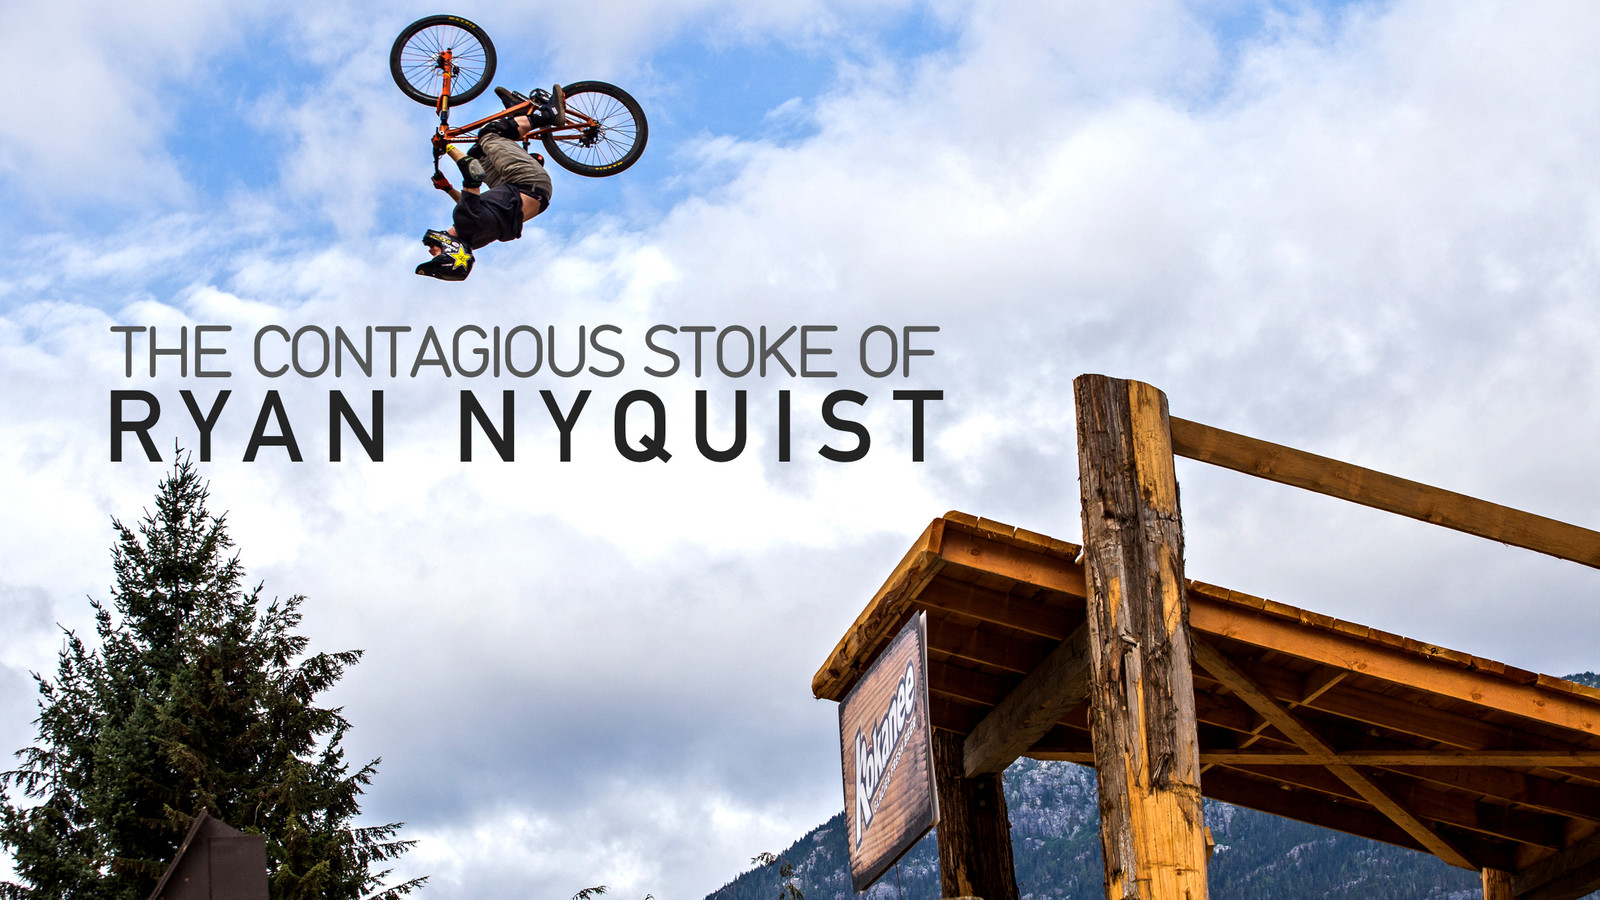 The Contagious Stoke of Ryan Nyquist